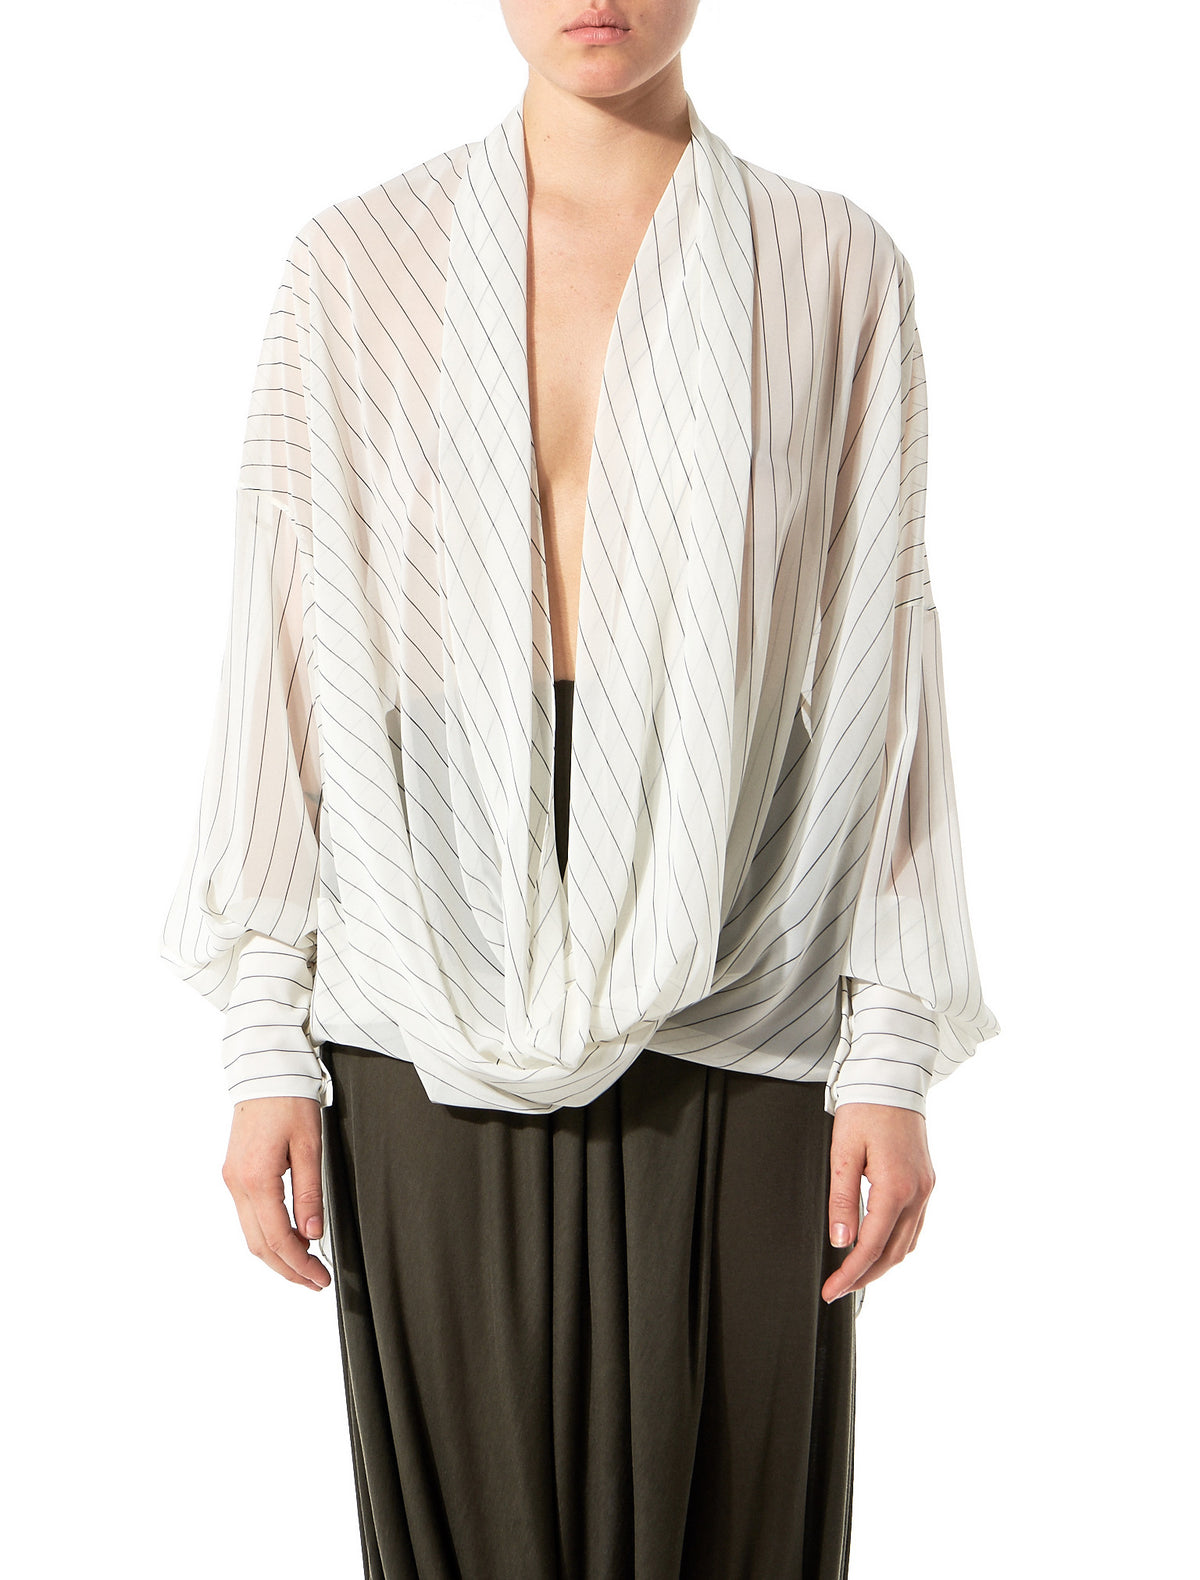 Draped Collar Top (GLS-SD51-IVORY-BLACK) - H. Lorenzo